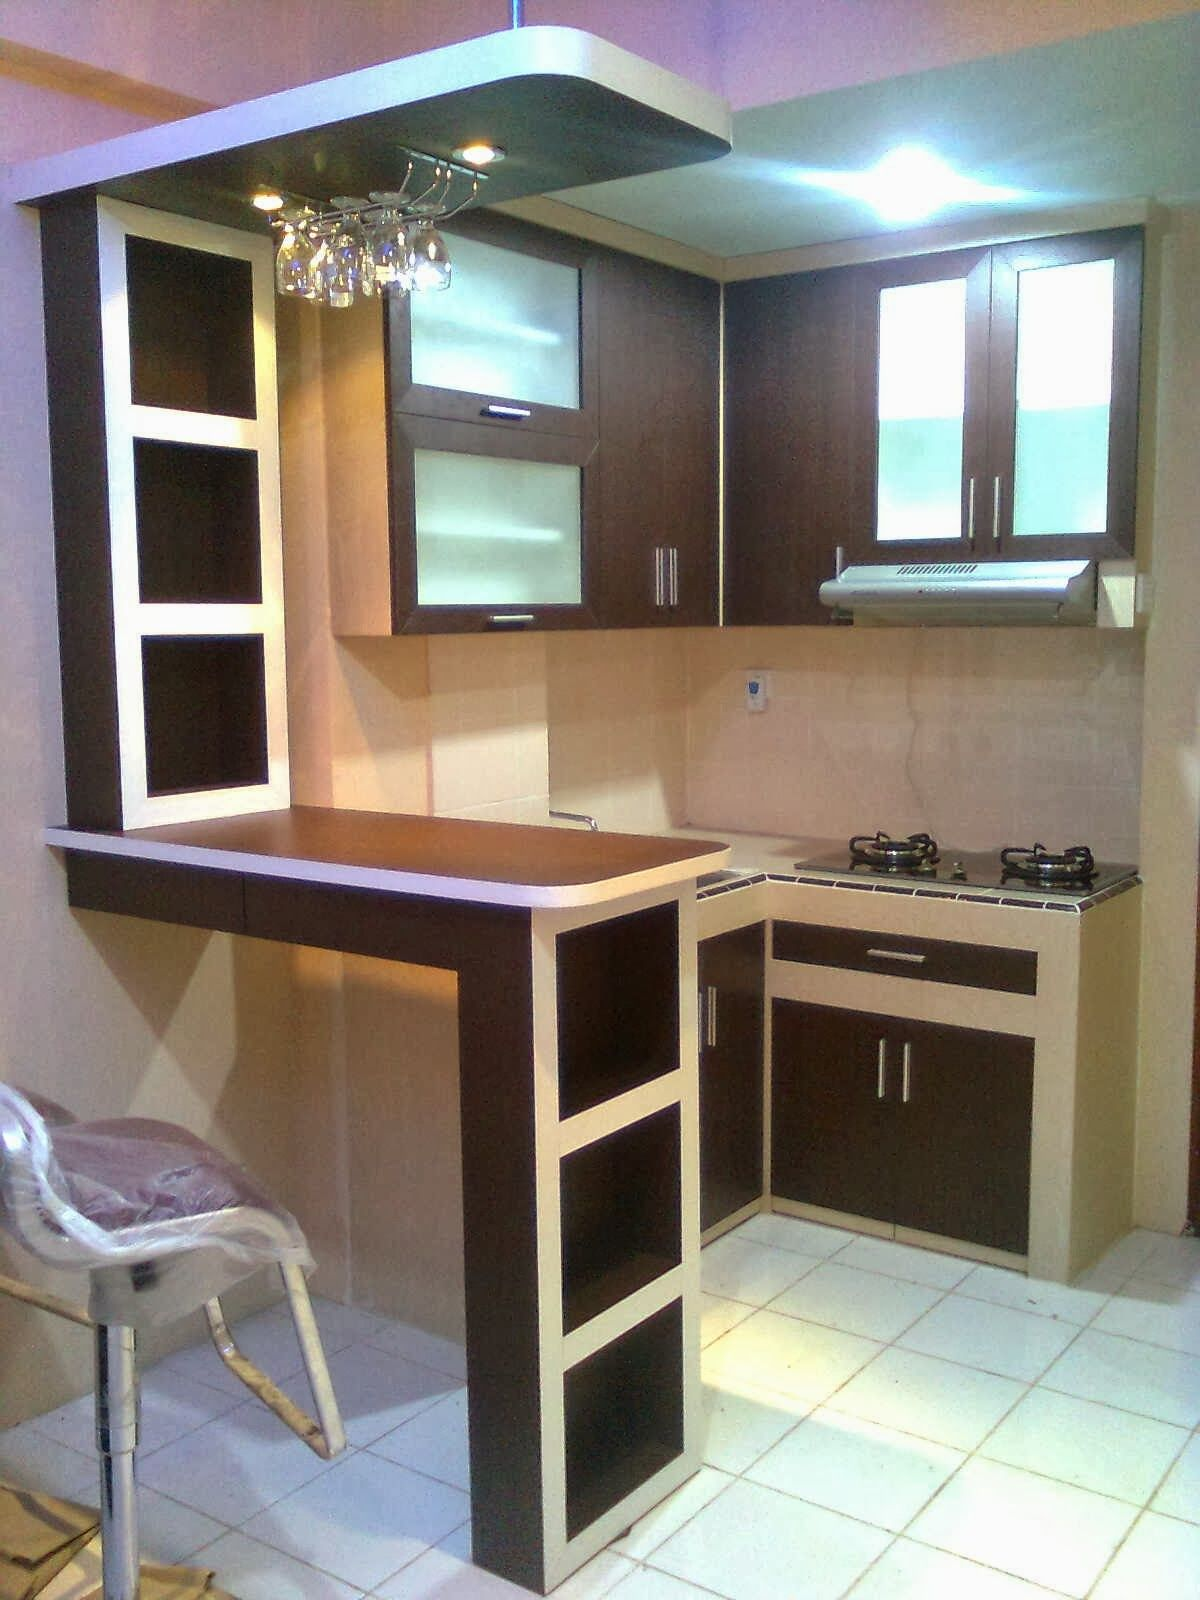 Harga kitchen set per meter kitchen set pinterest for Harga kitchen set minimalis per meter